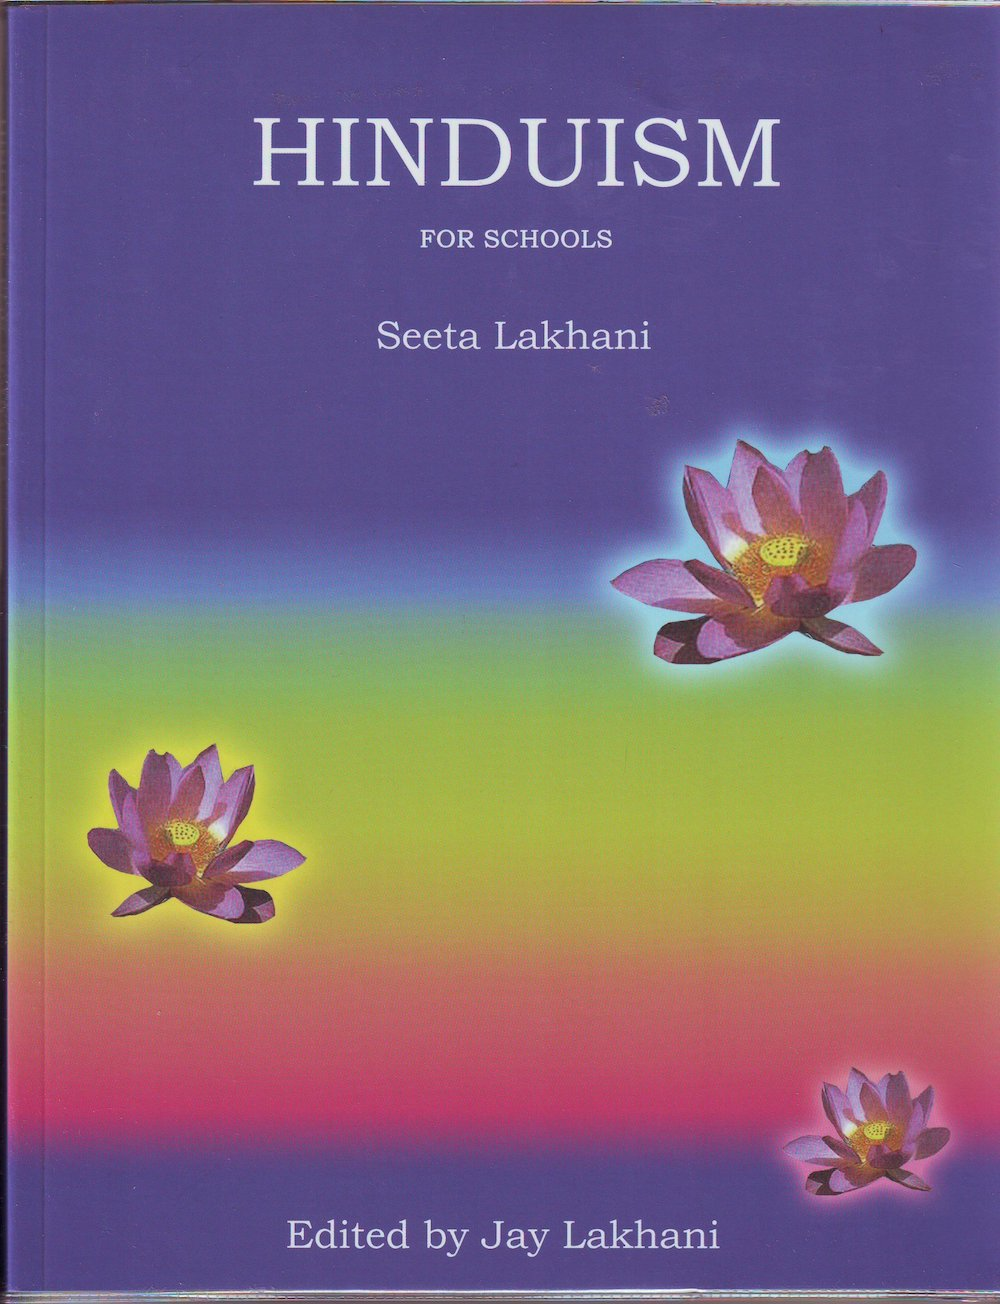 Hinduism for Schools